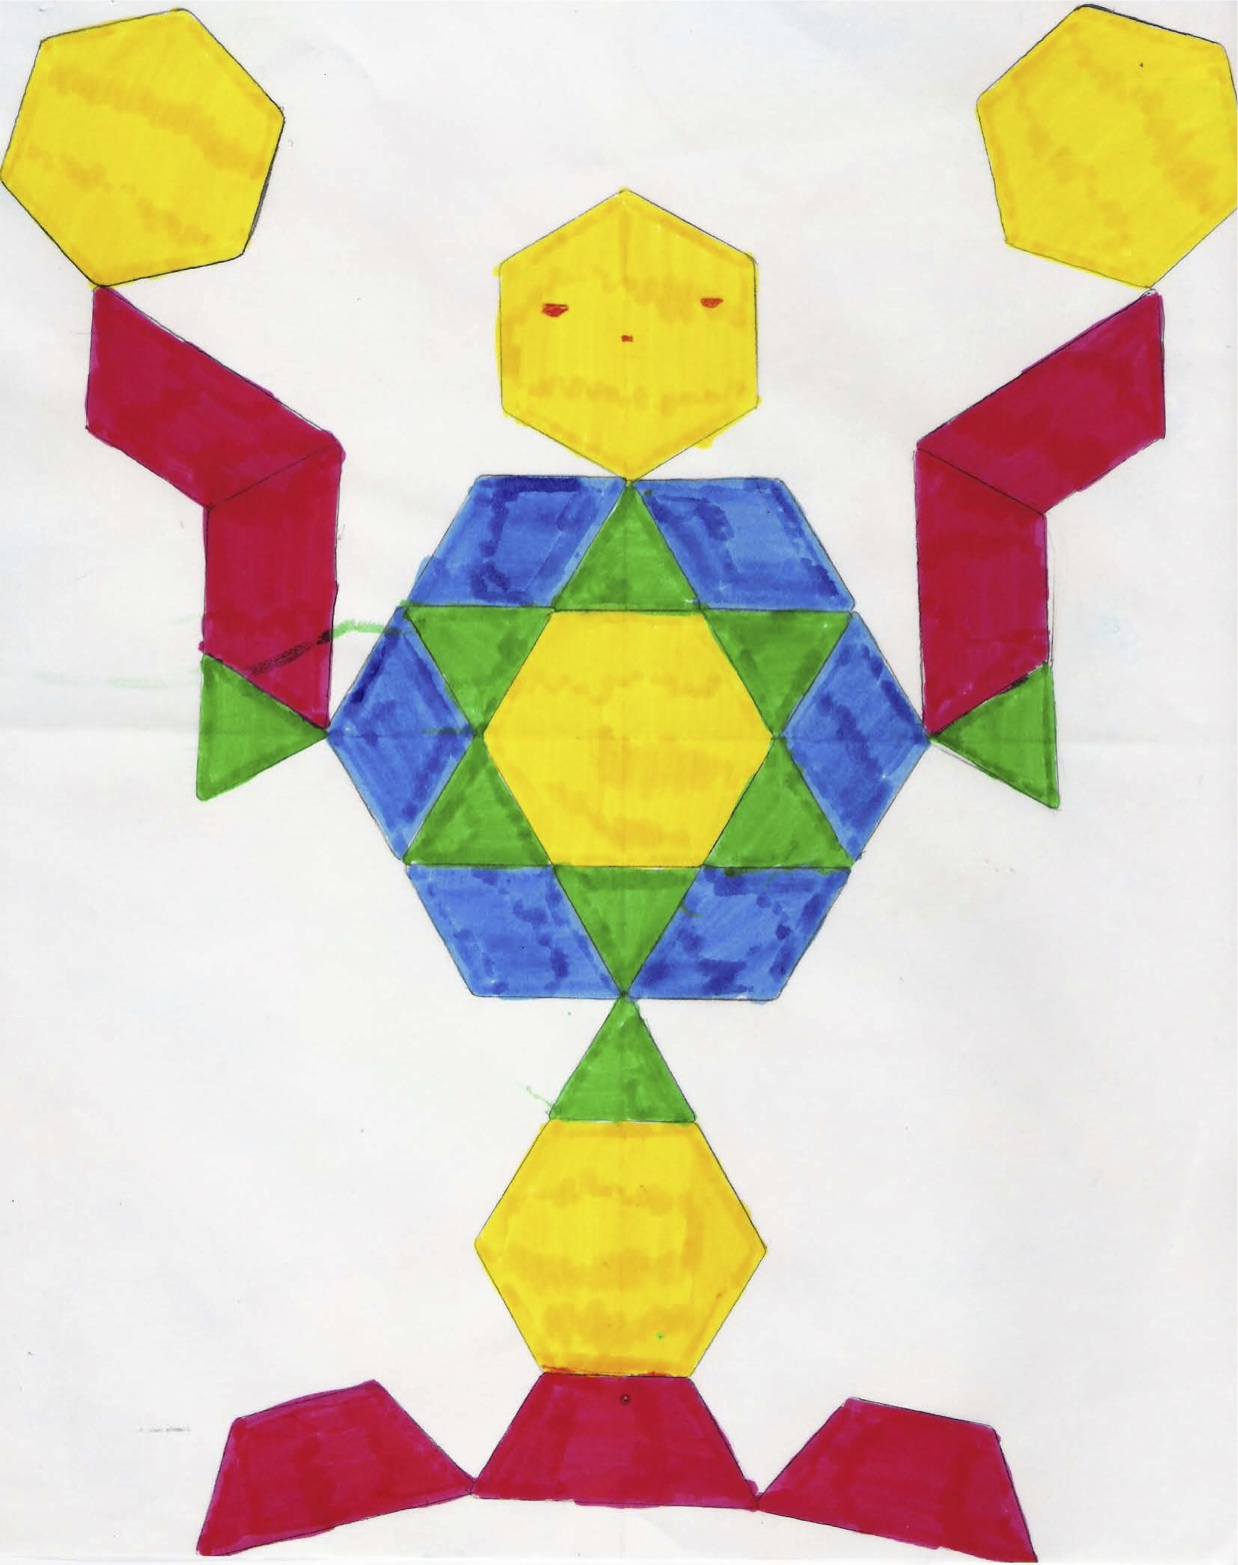 mathreuls [licensed for non-commercial use only] / Pattern Block ...